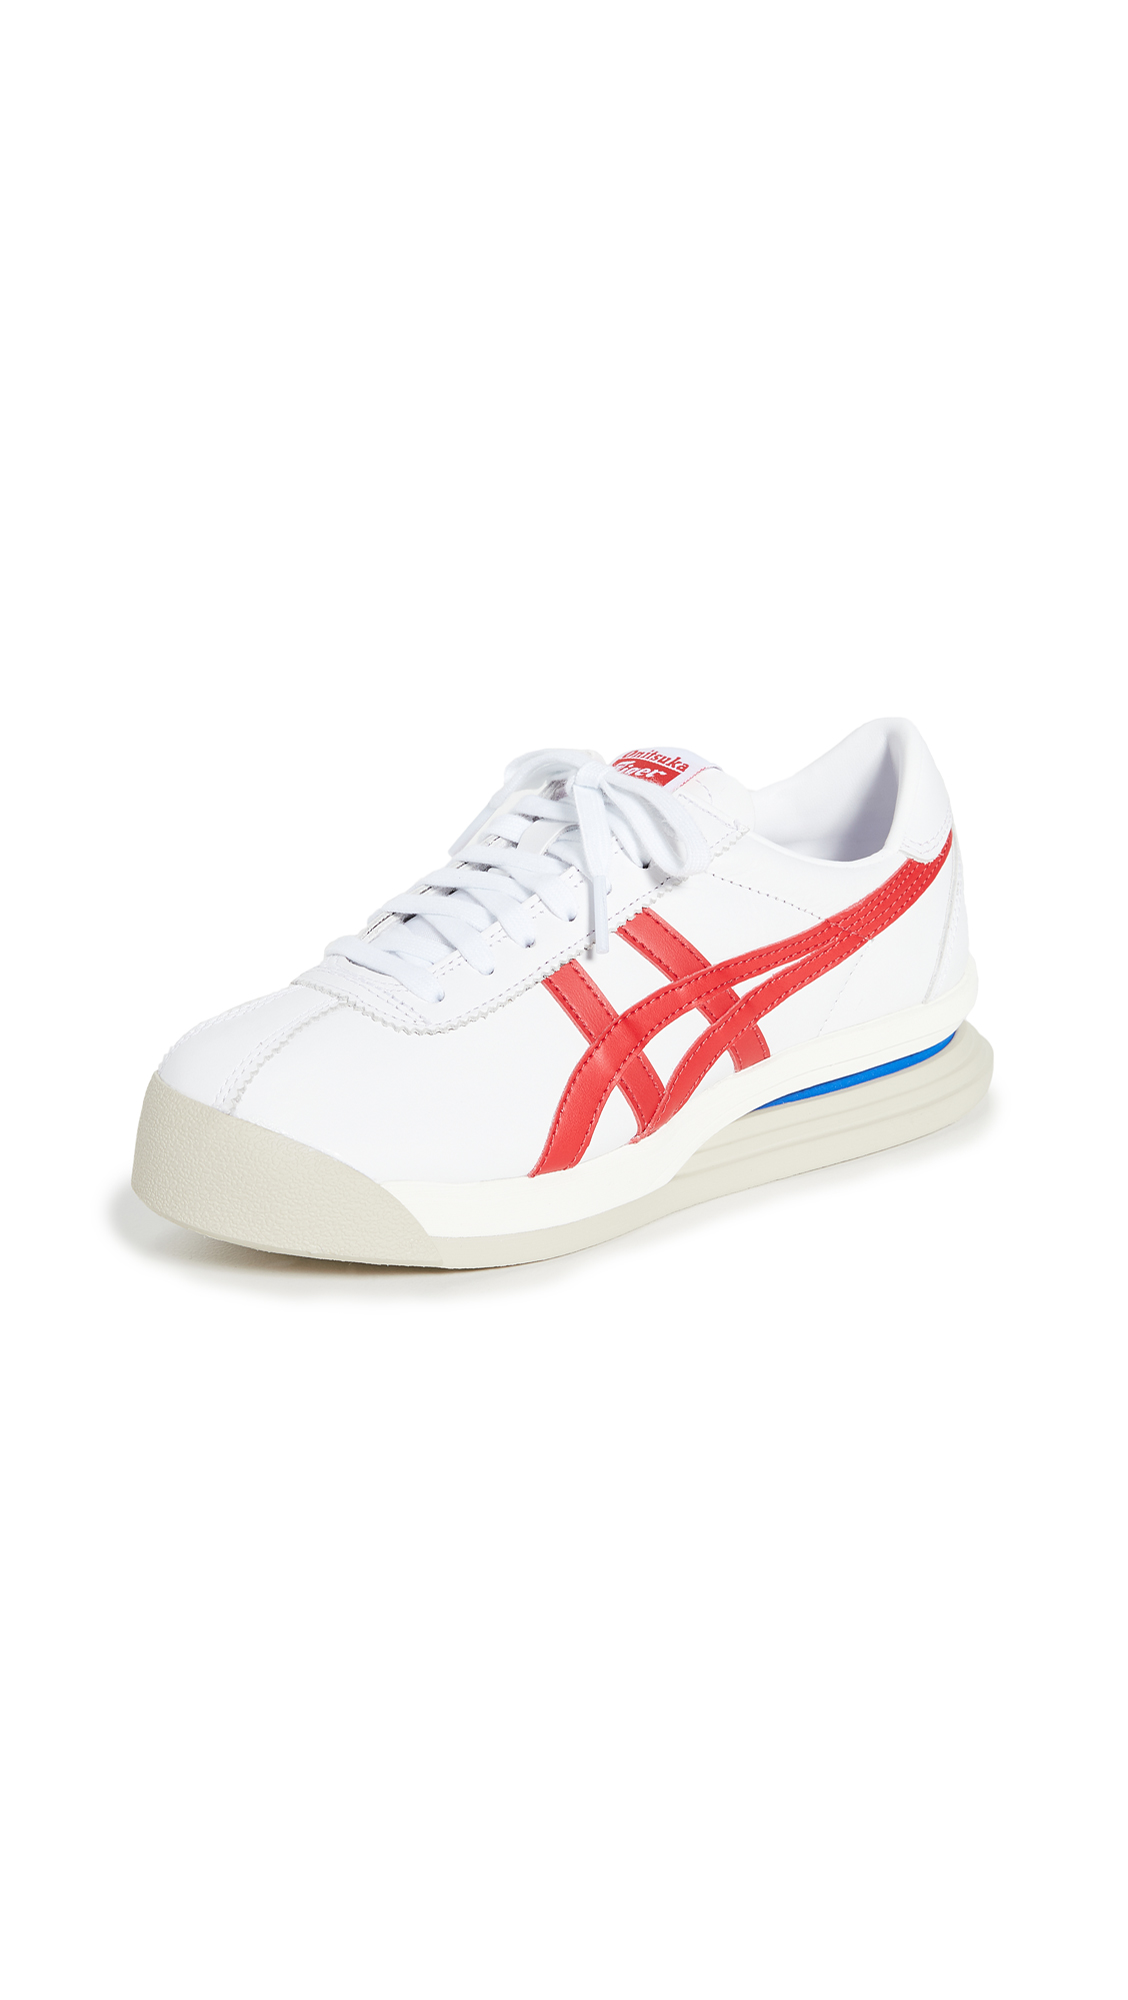 Onitsuka Tiger Tiger Corsair Ex Sneakers - 50% Off Sale